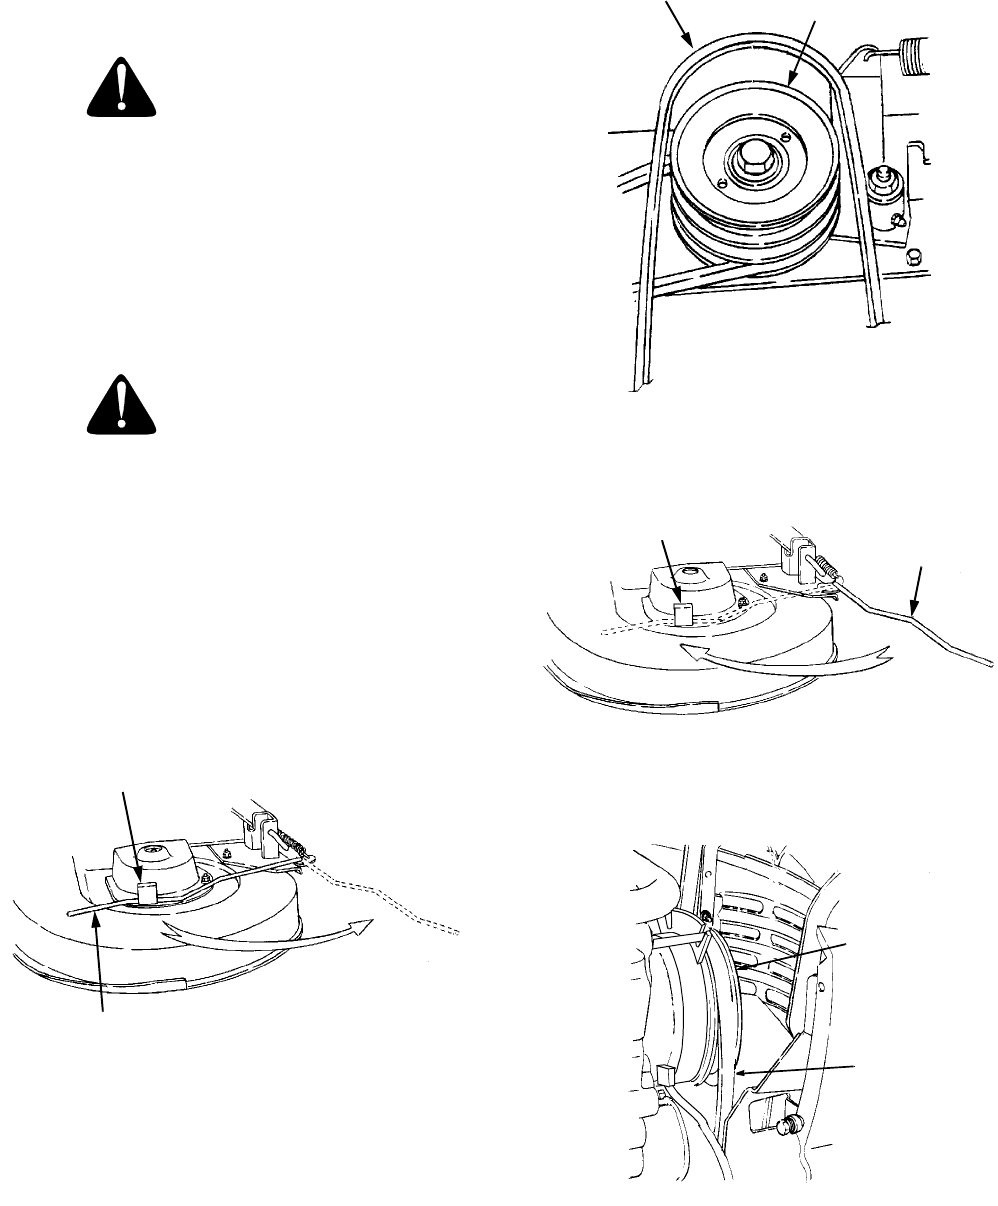 Page 37 of Cub Cadet Lawn Mower 2166 User Guide